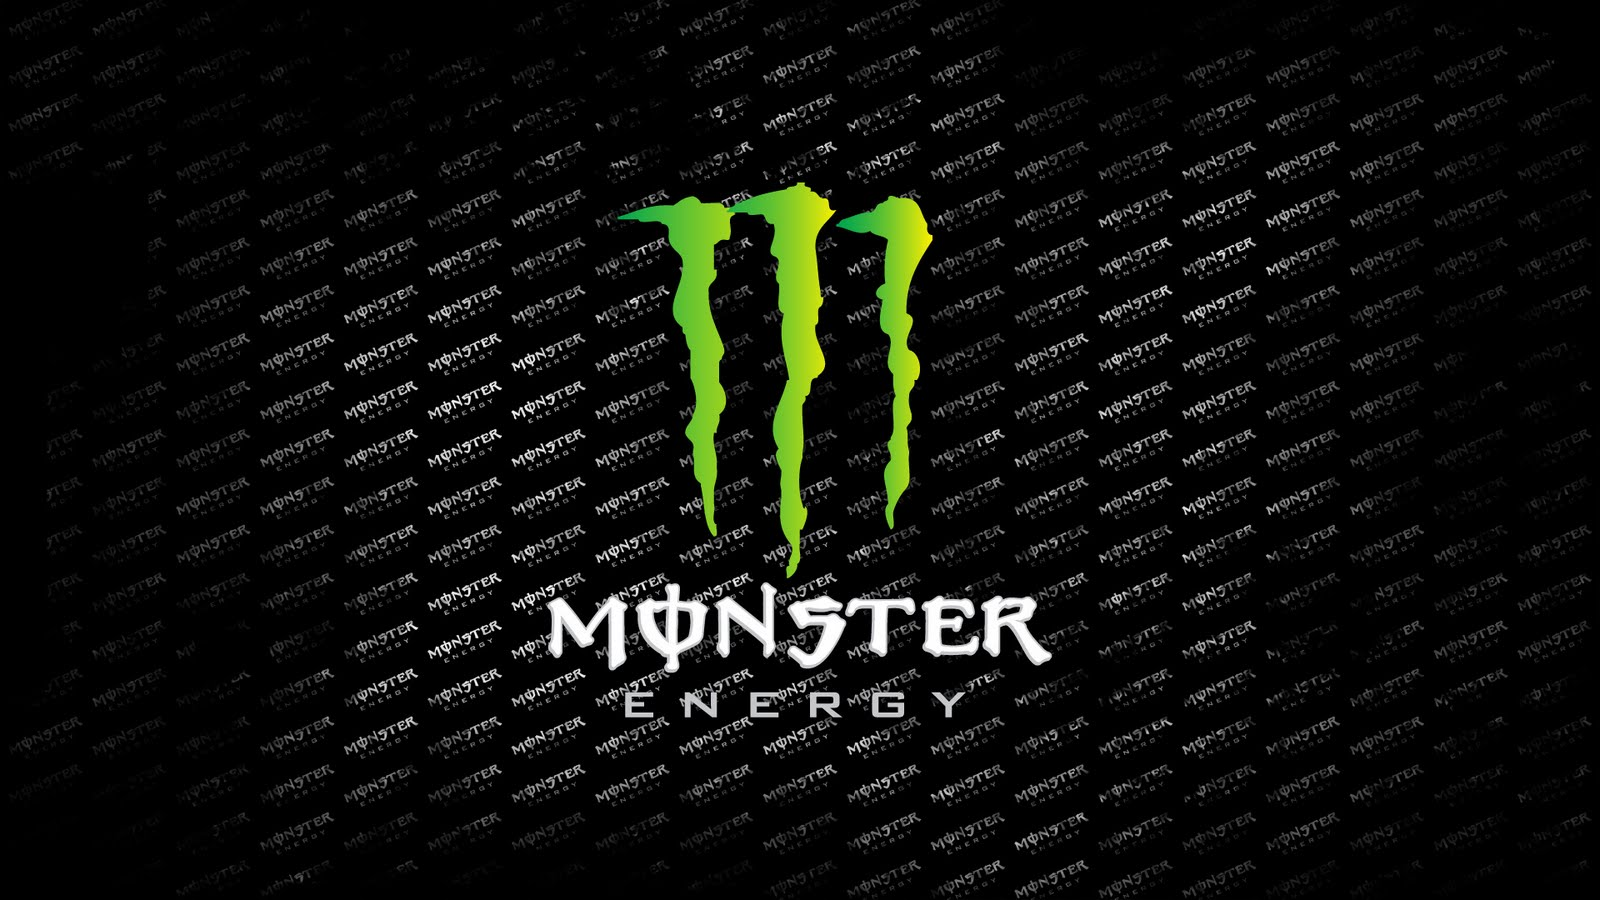 Monster energy drink at its finest essay